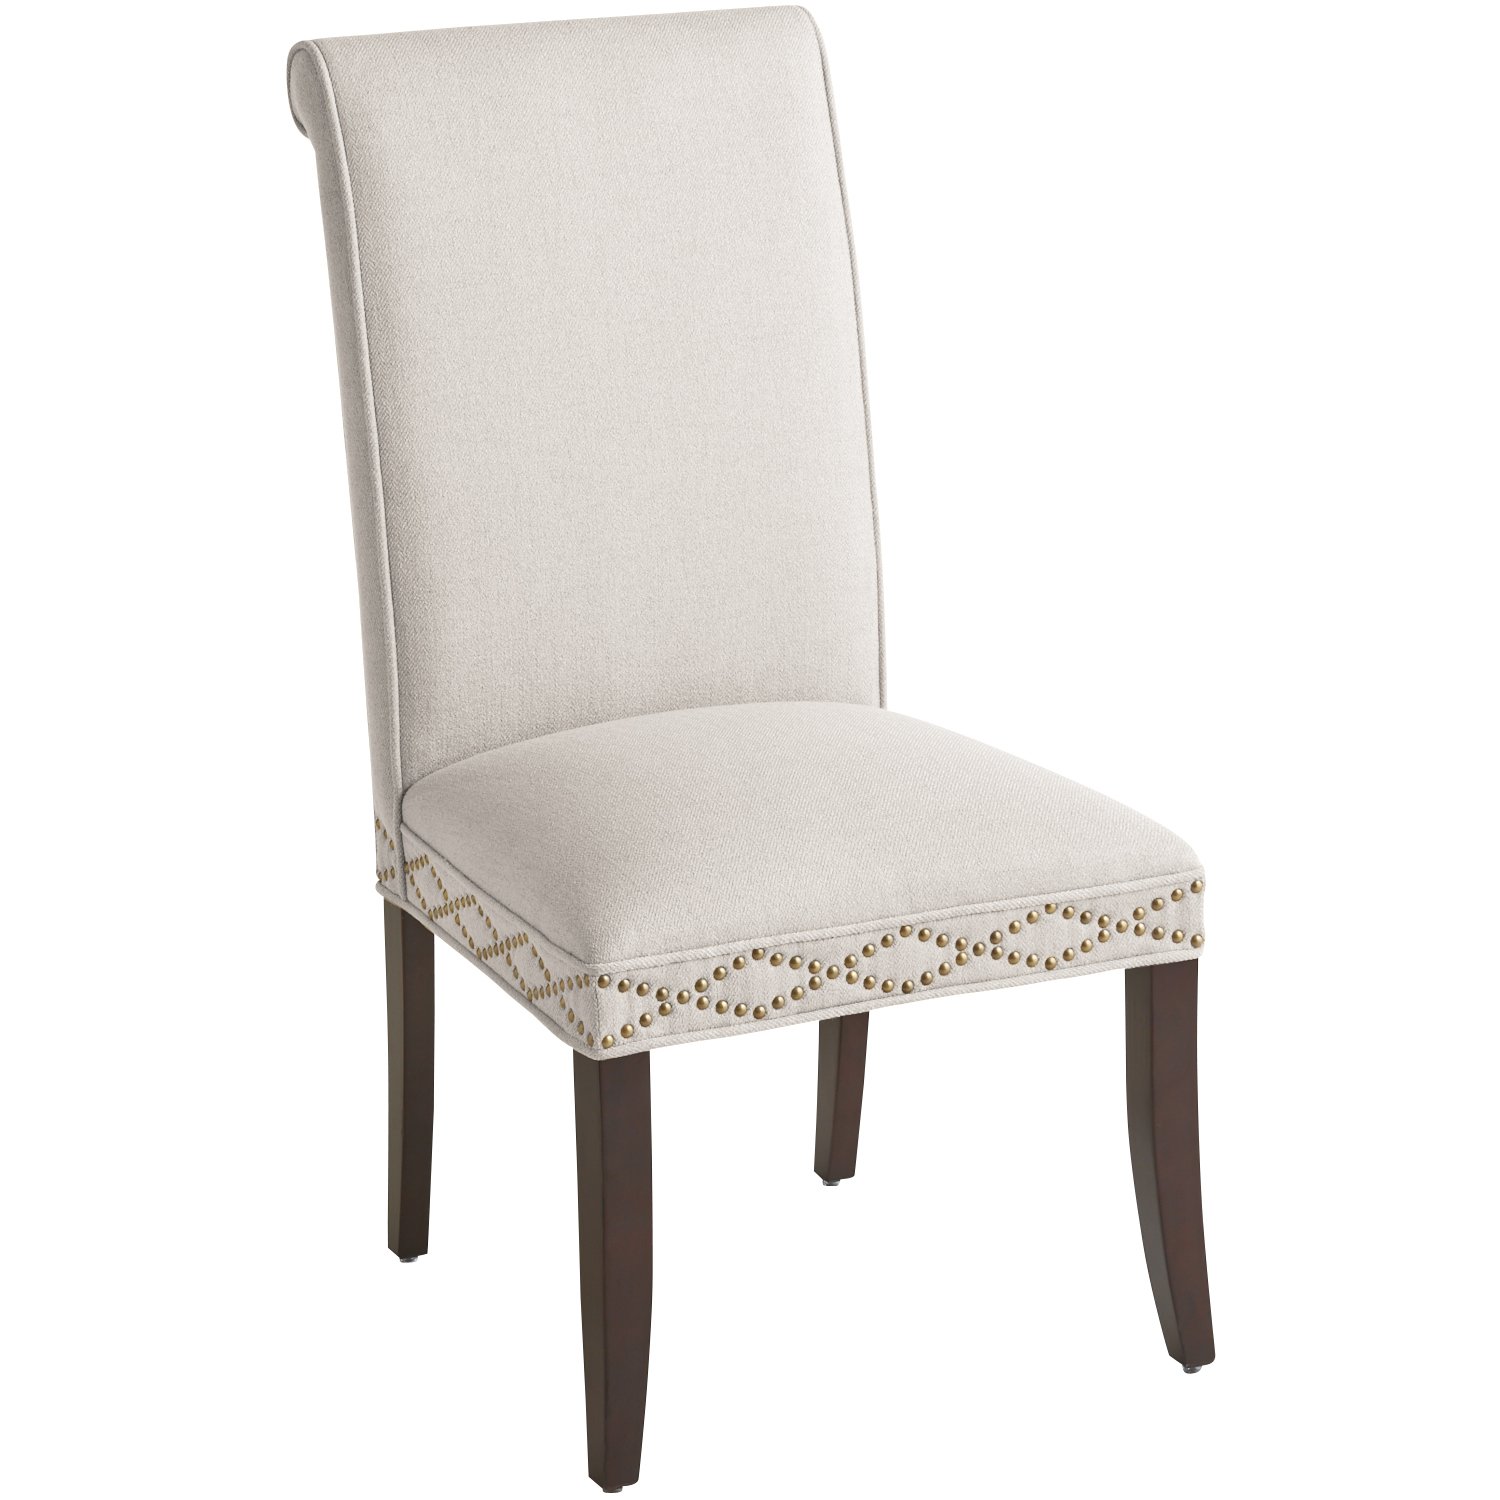 Angela Deluxe Dining Chair - Ivory